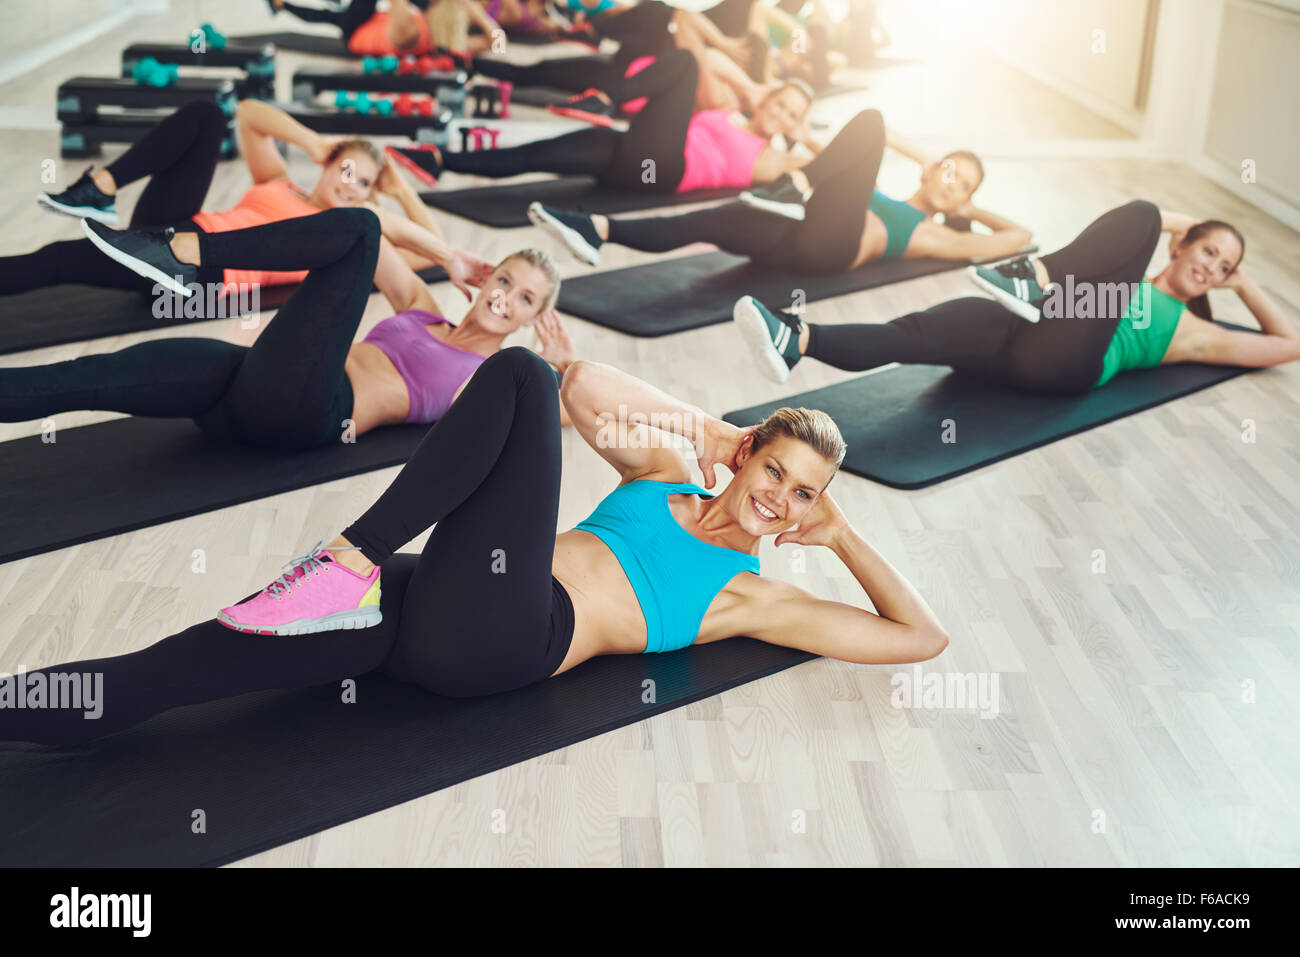 Group of fit healthy young women in a gym wearing colorful sportswear working out in an aerobics class in a healthy - Stock Image